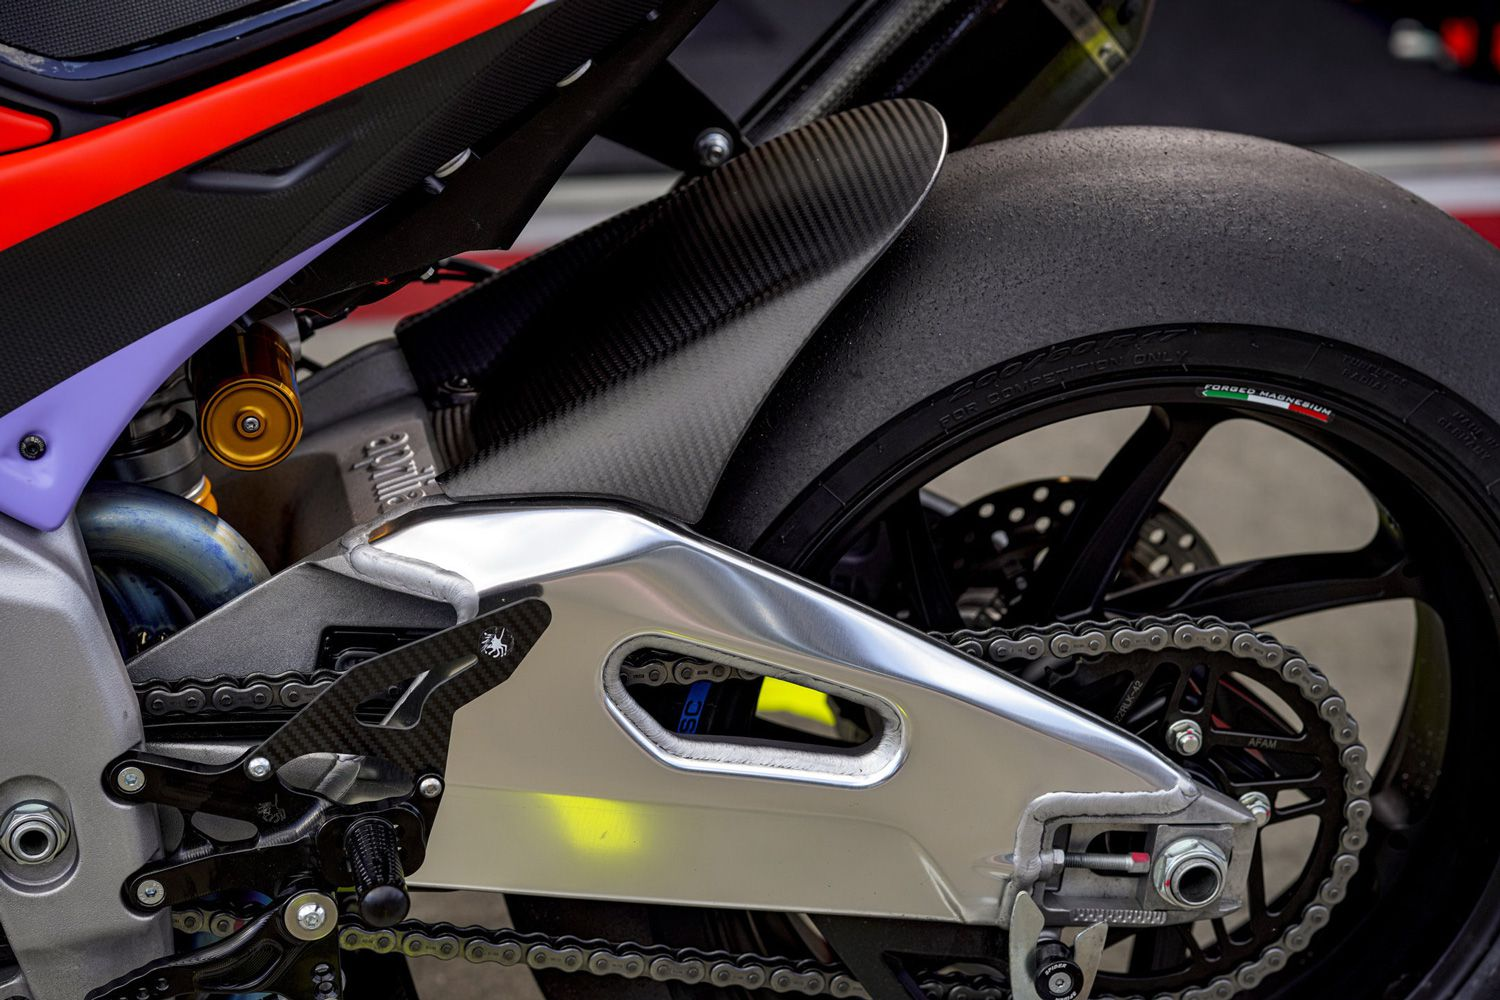 Look familiar? The RSV4 X chassis provides the foundation for the Tuono V4 X.